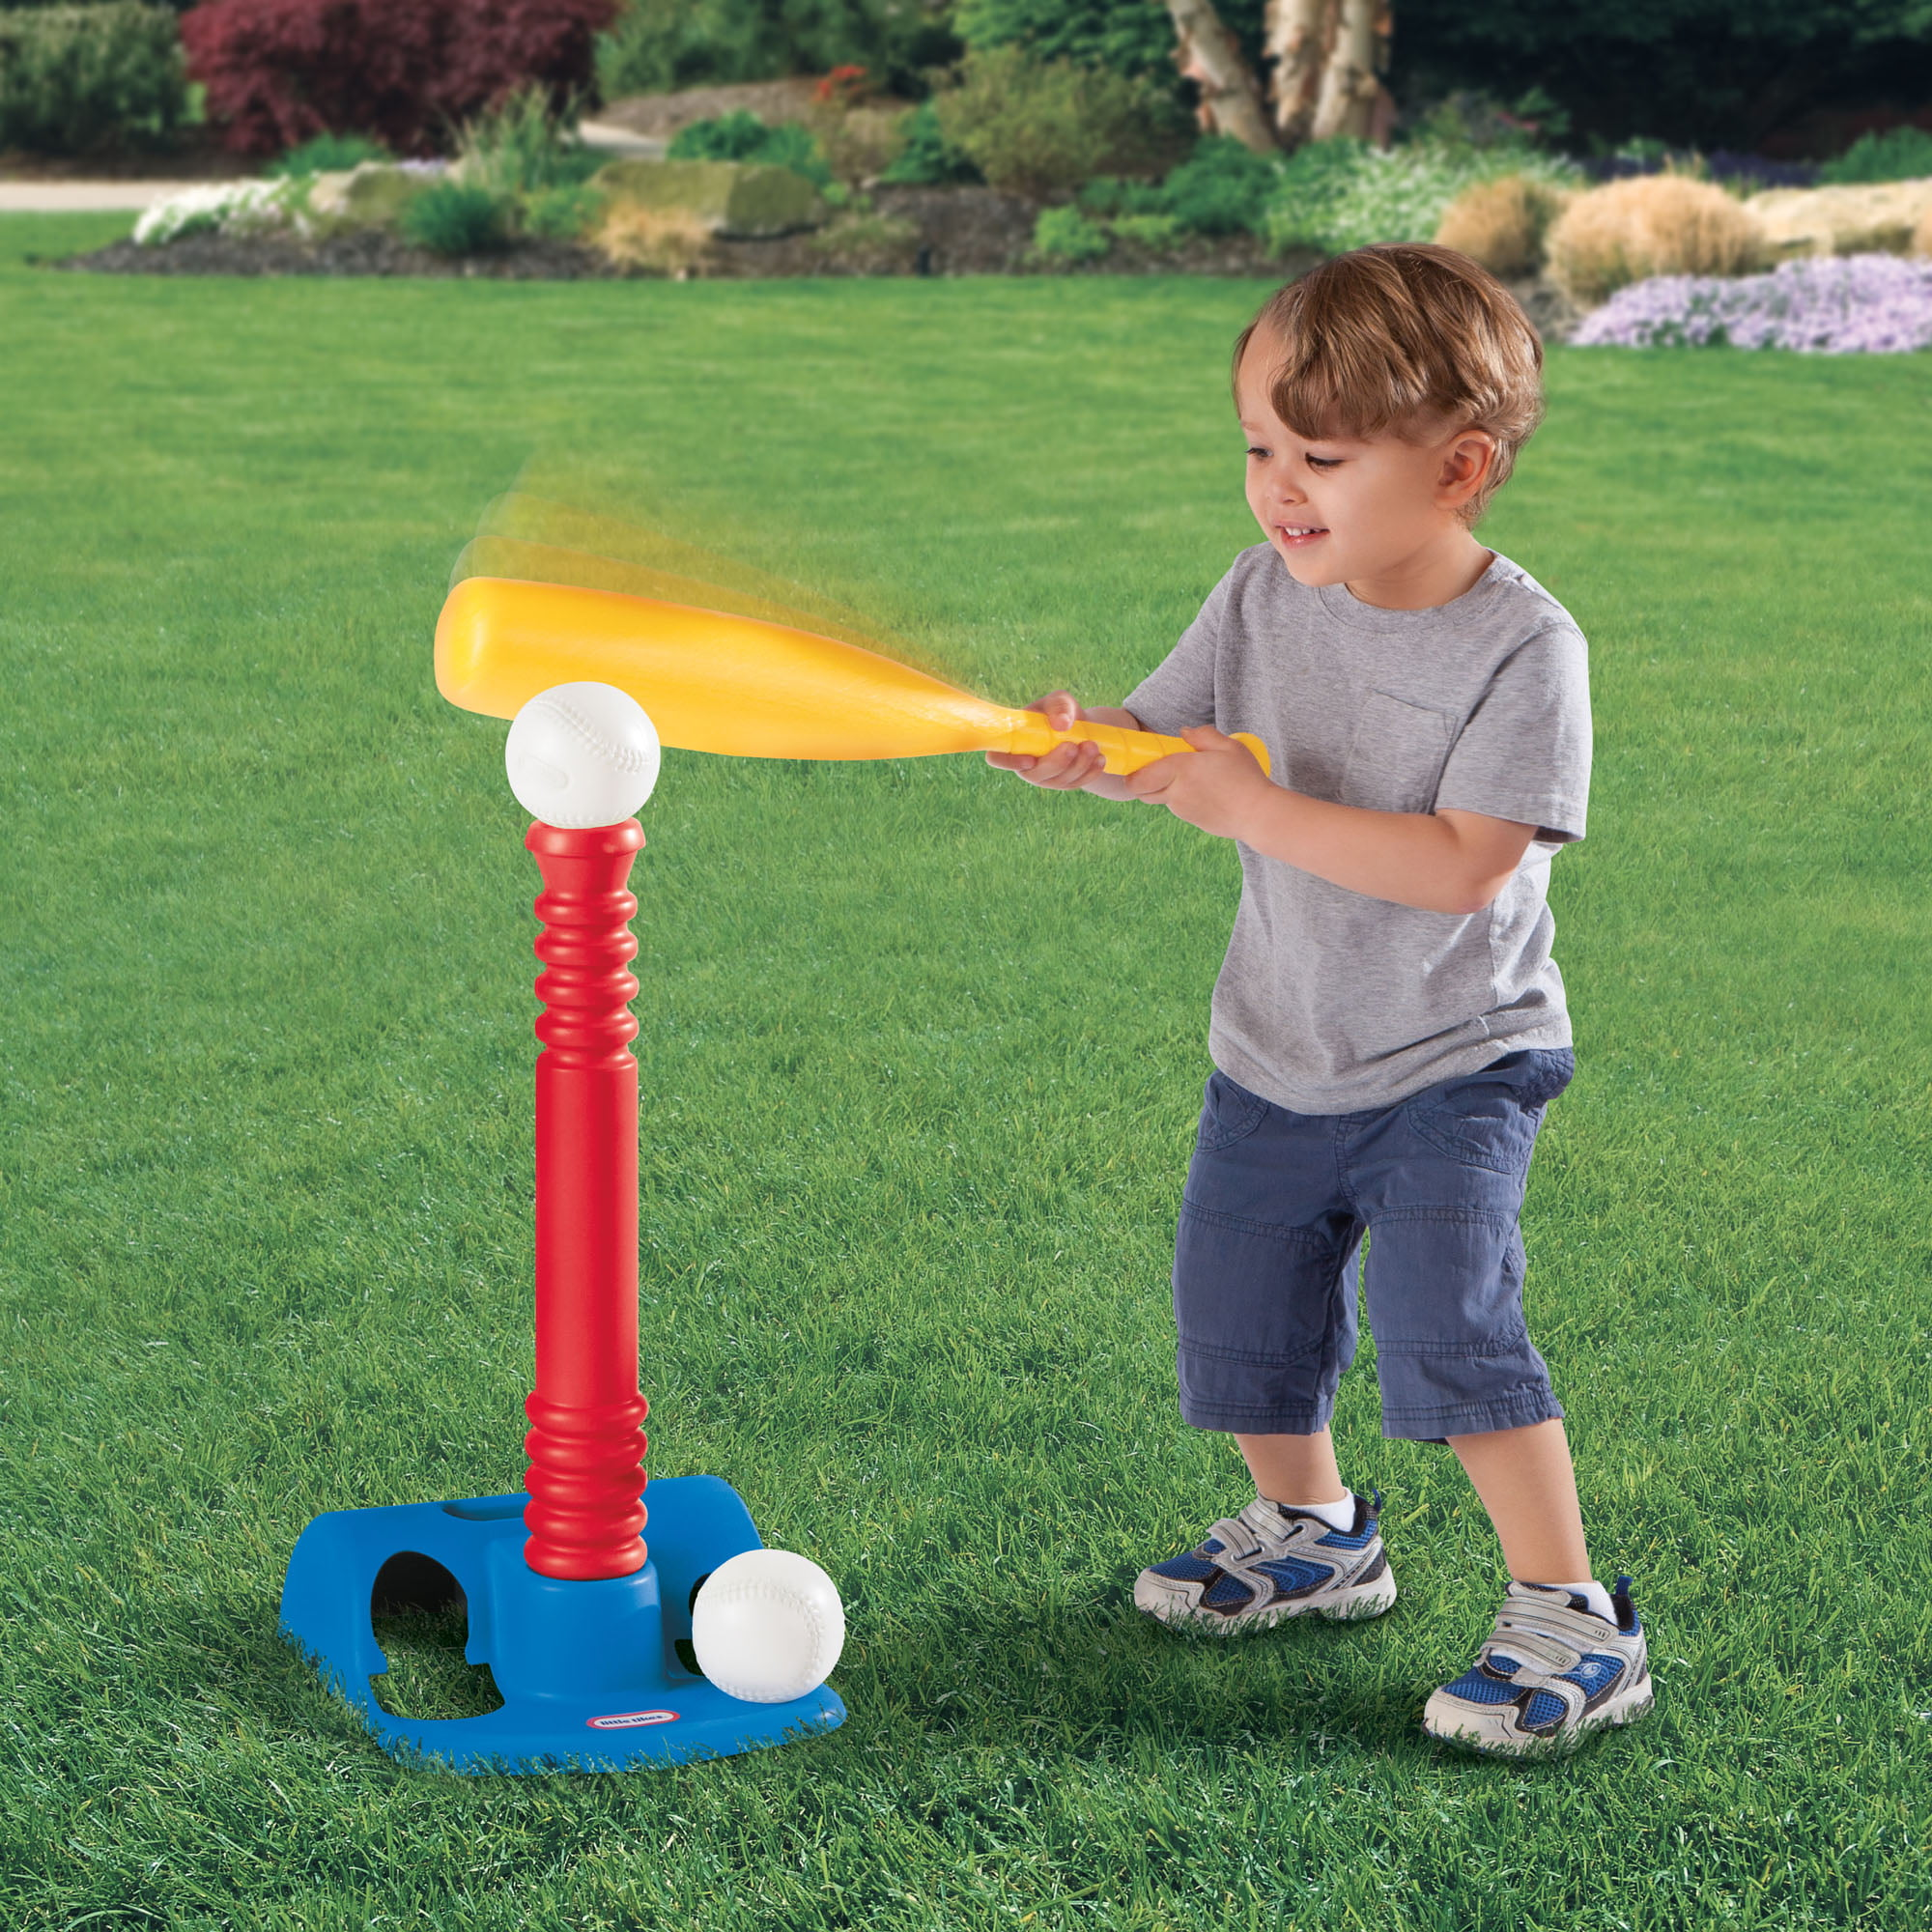 Toddlers and Kids Adjustable Batting Tee Game W// 8 Balls Develops and Improves Baseball Softball Sports Toy for Boys and Girls T-Ball Set // Tee Ball Ball Skills Children Ages 1-12